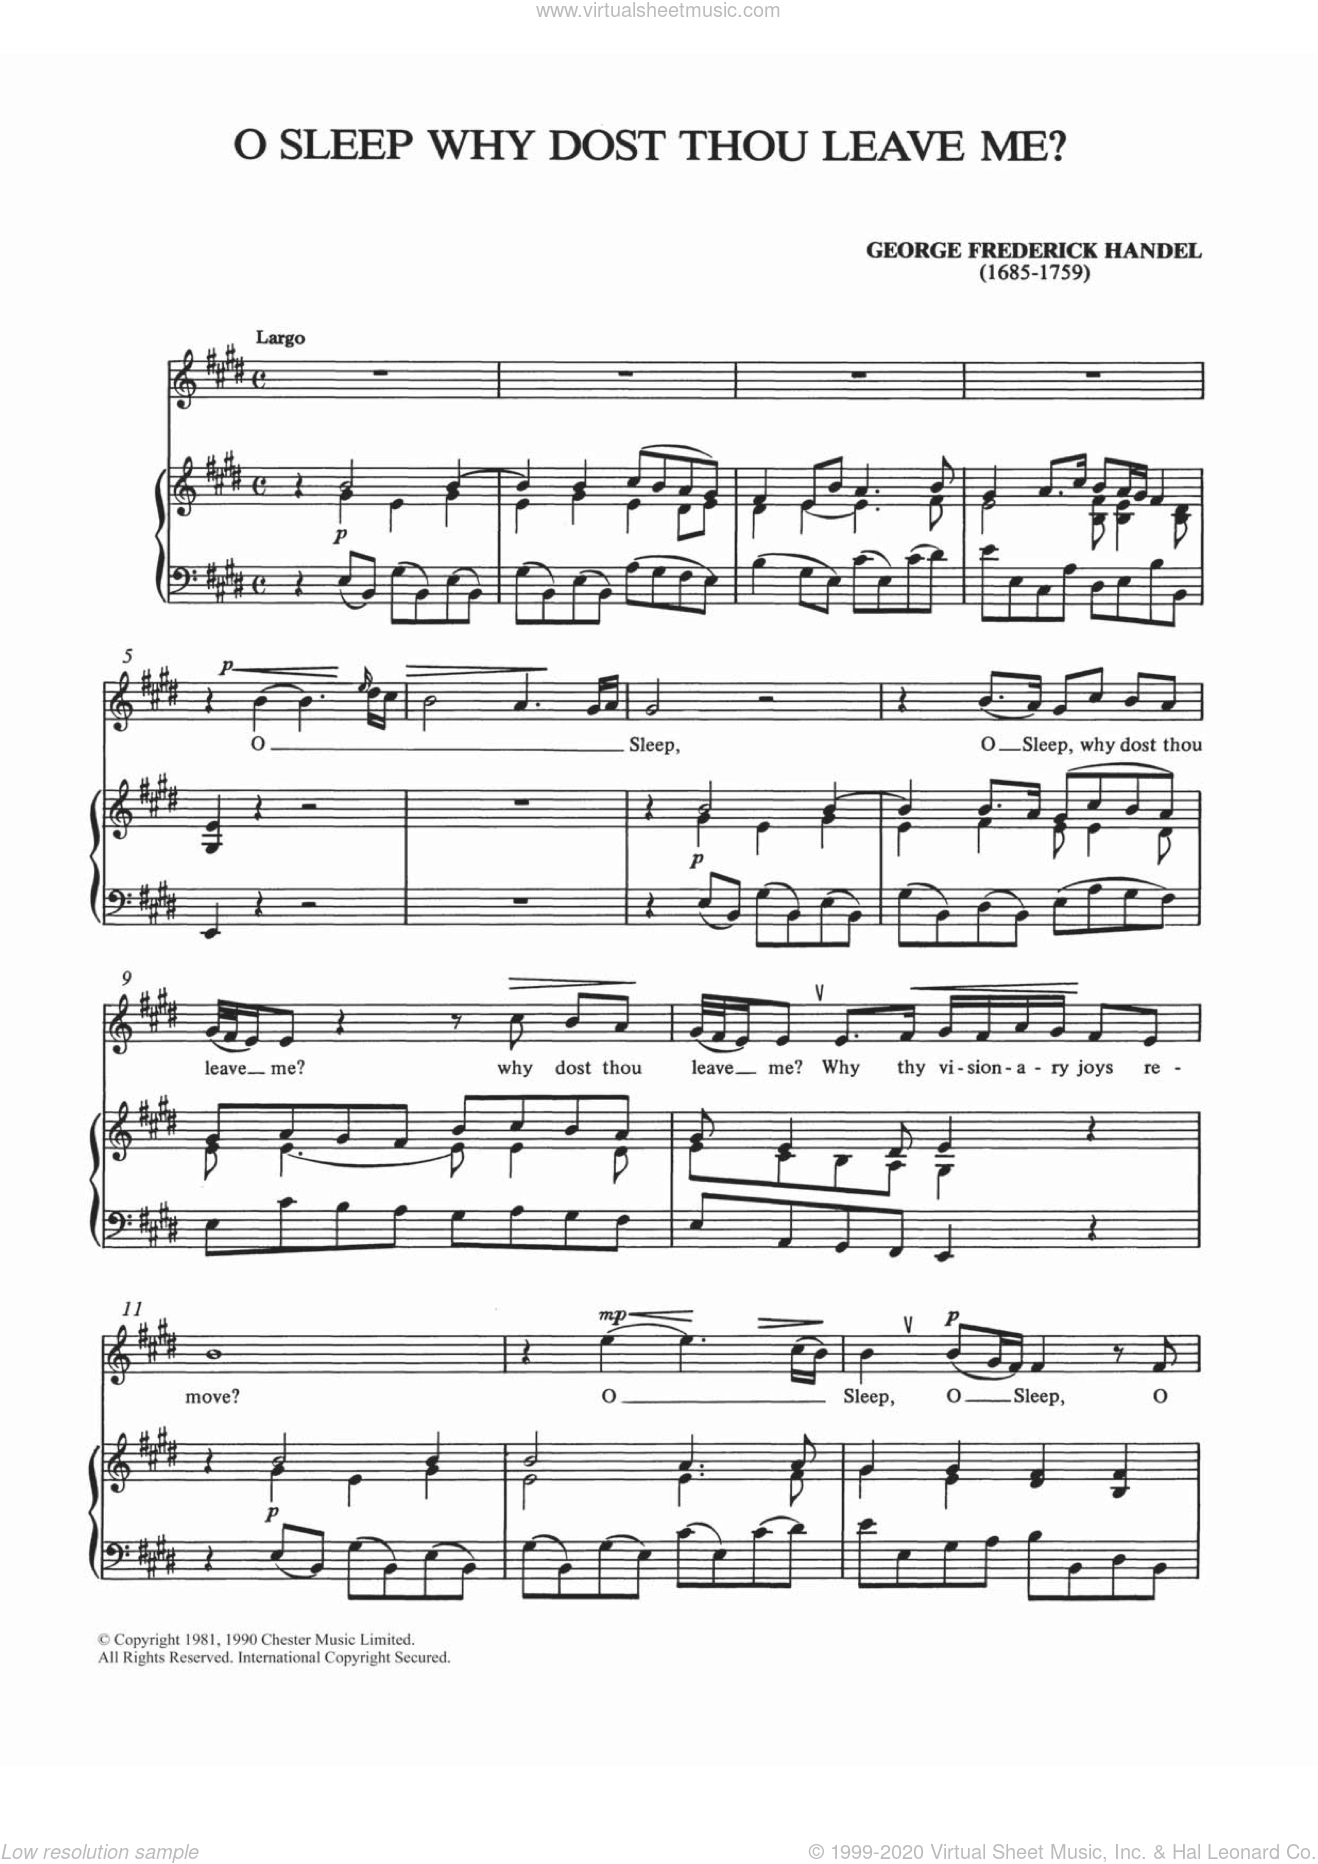 O Sleep Why Dost Thou Leave Me? sheet music for voice and piano by George Frideric Handel and Shirley Leah, classical score, intermediate skill level